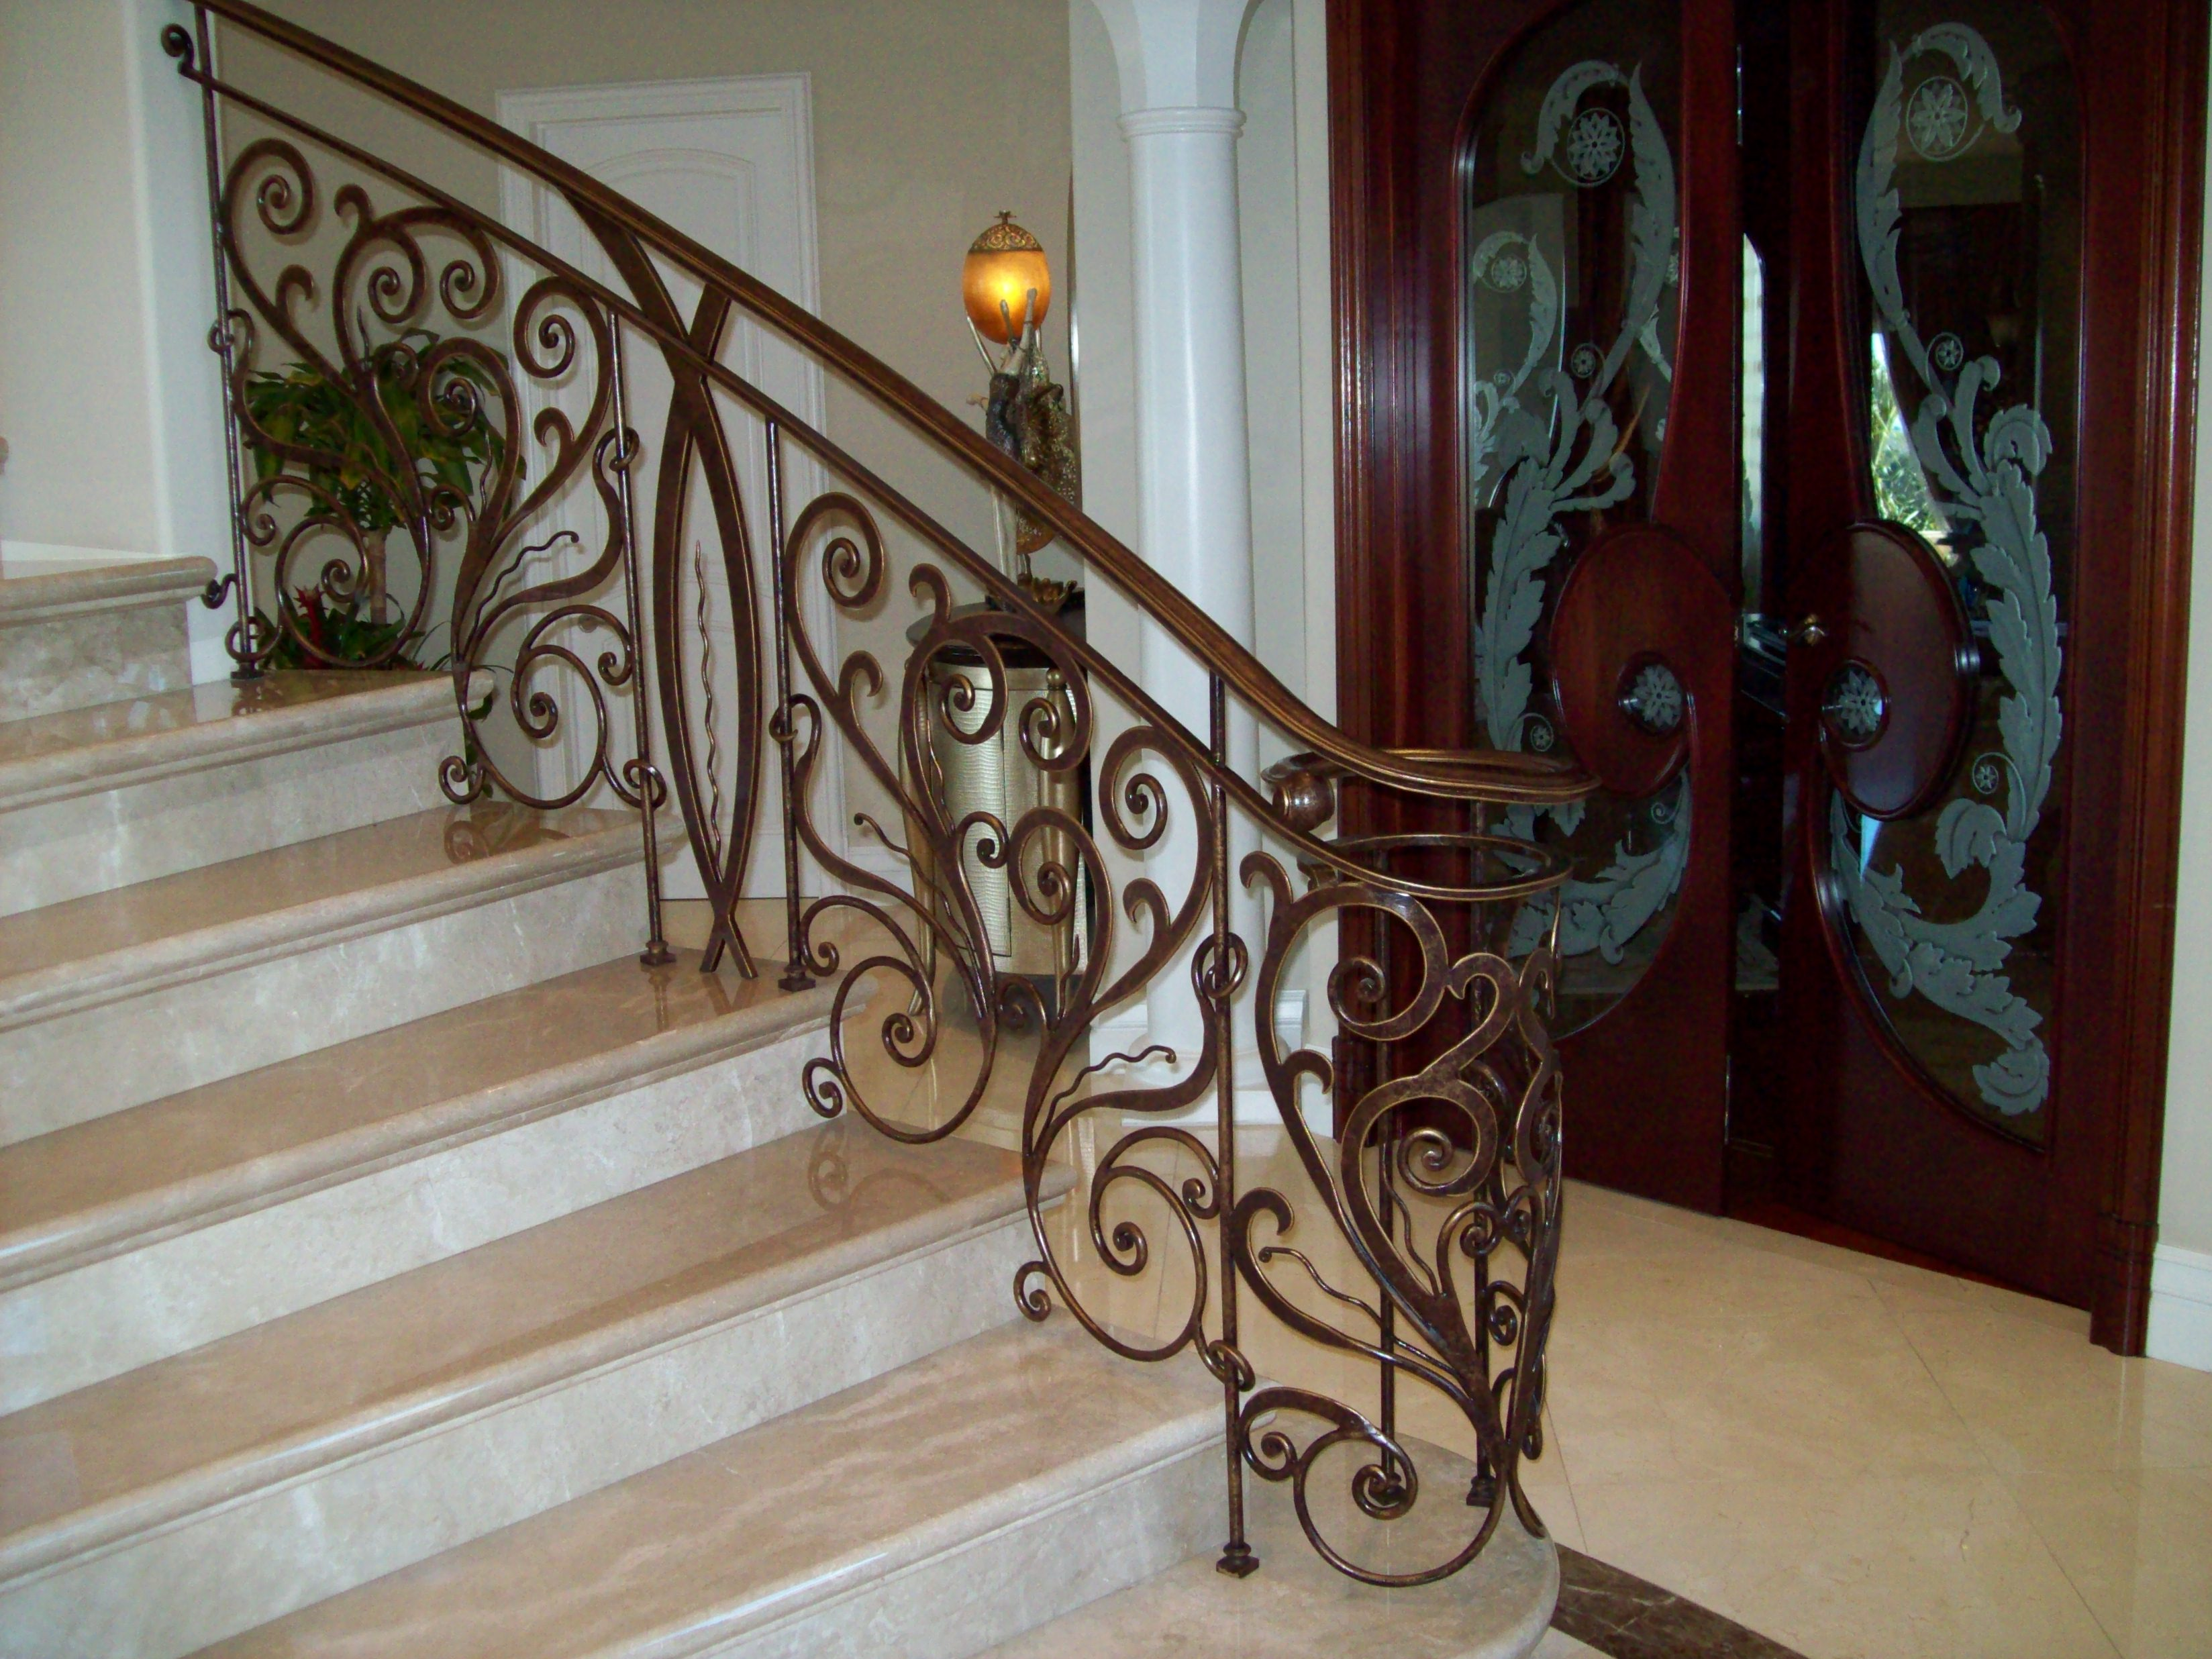 Wrought Iron Staircase Designs Rod Iron Railing Adds Perfection To Every Step Of